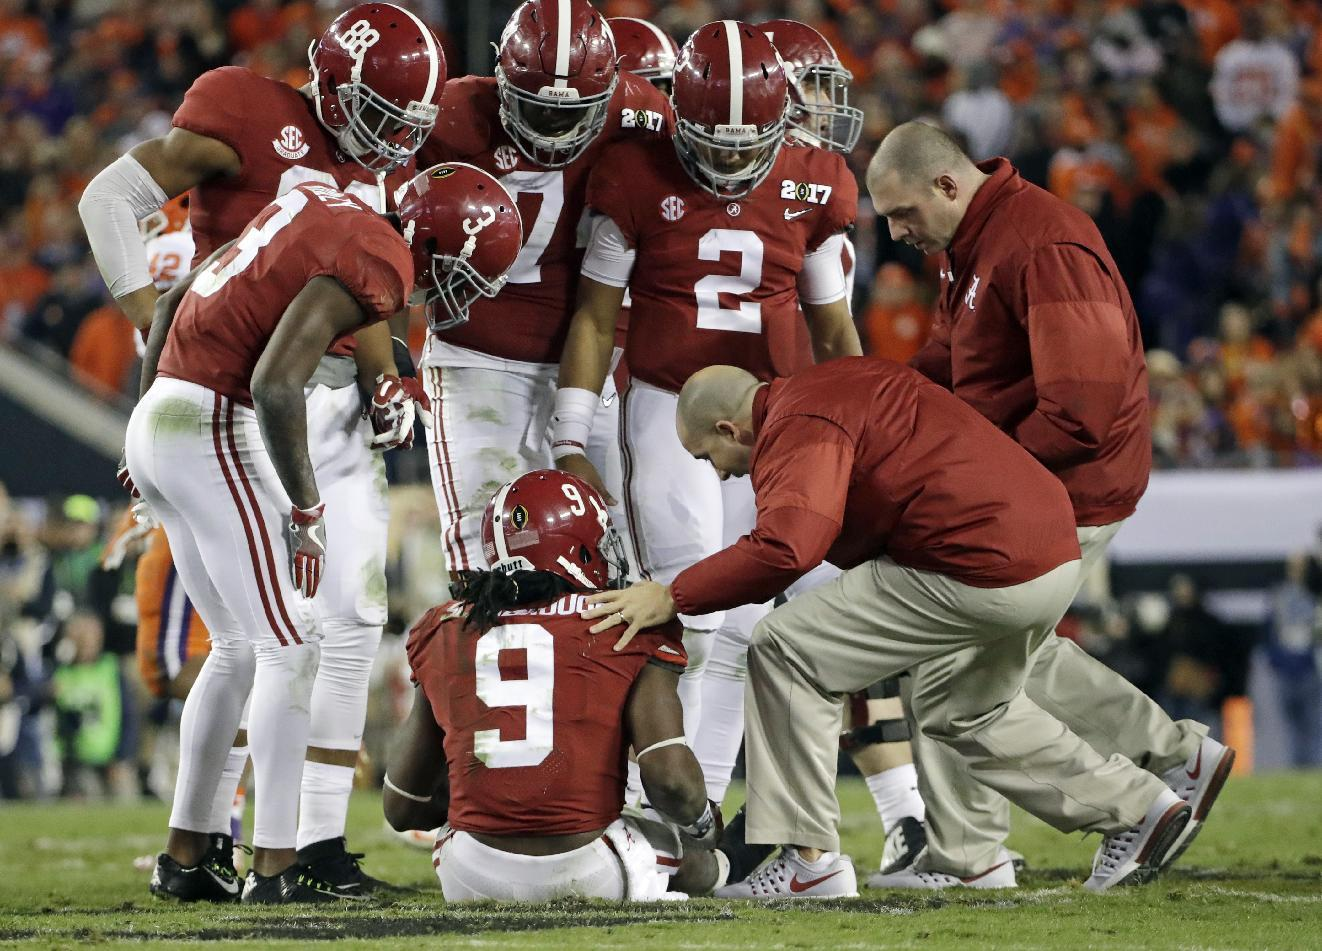 Bo Scarbrough goes down with leg injury